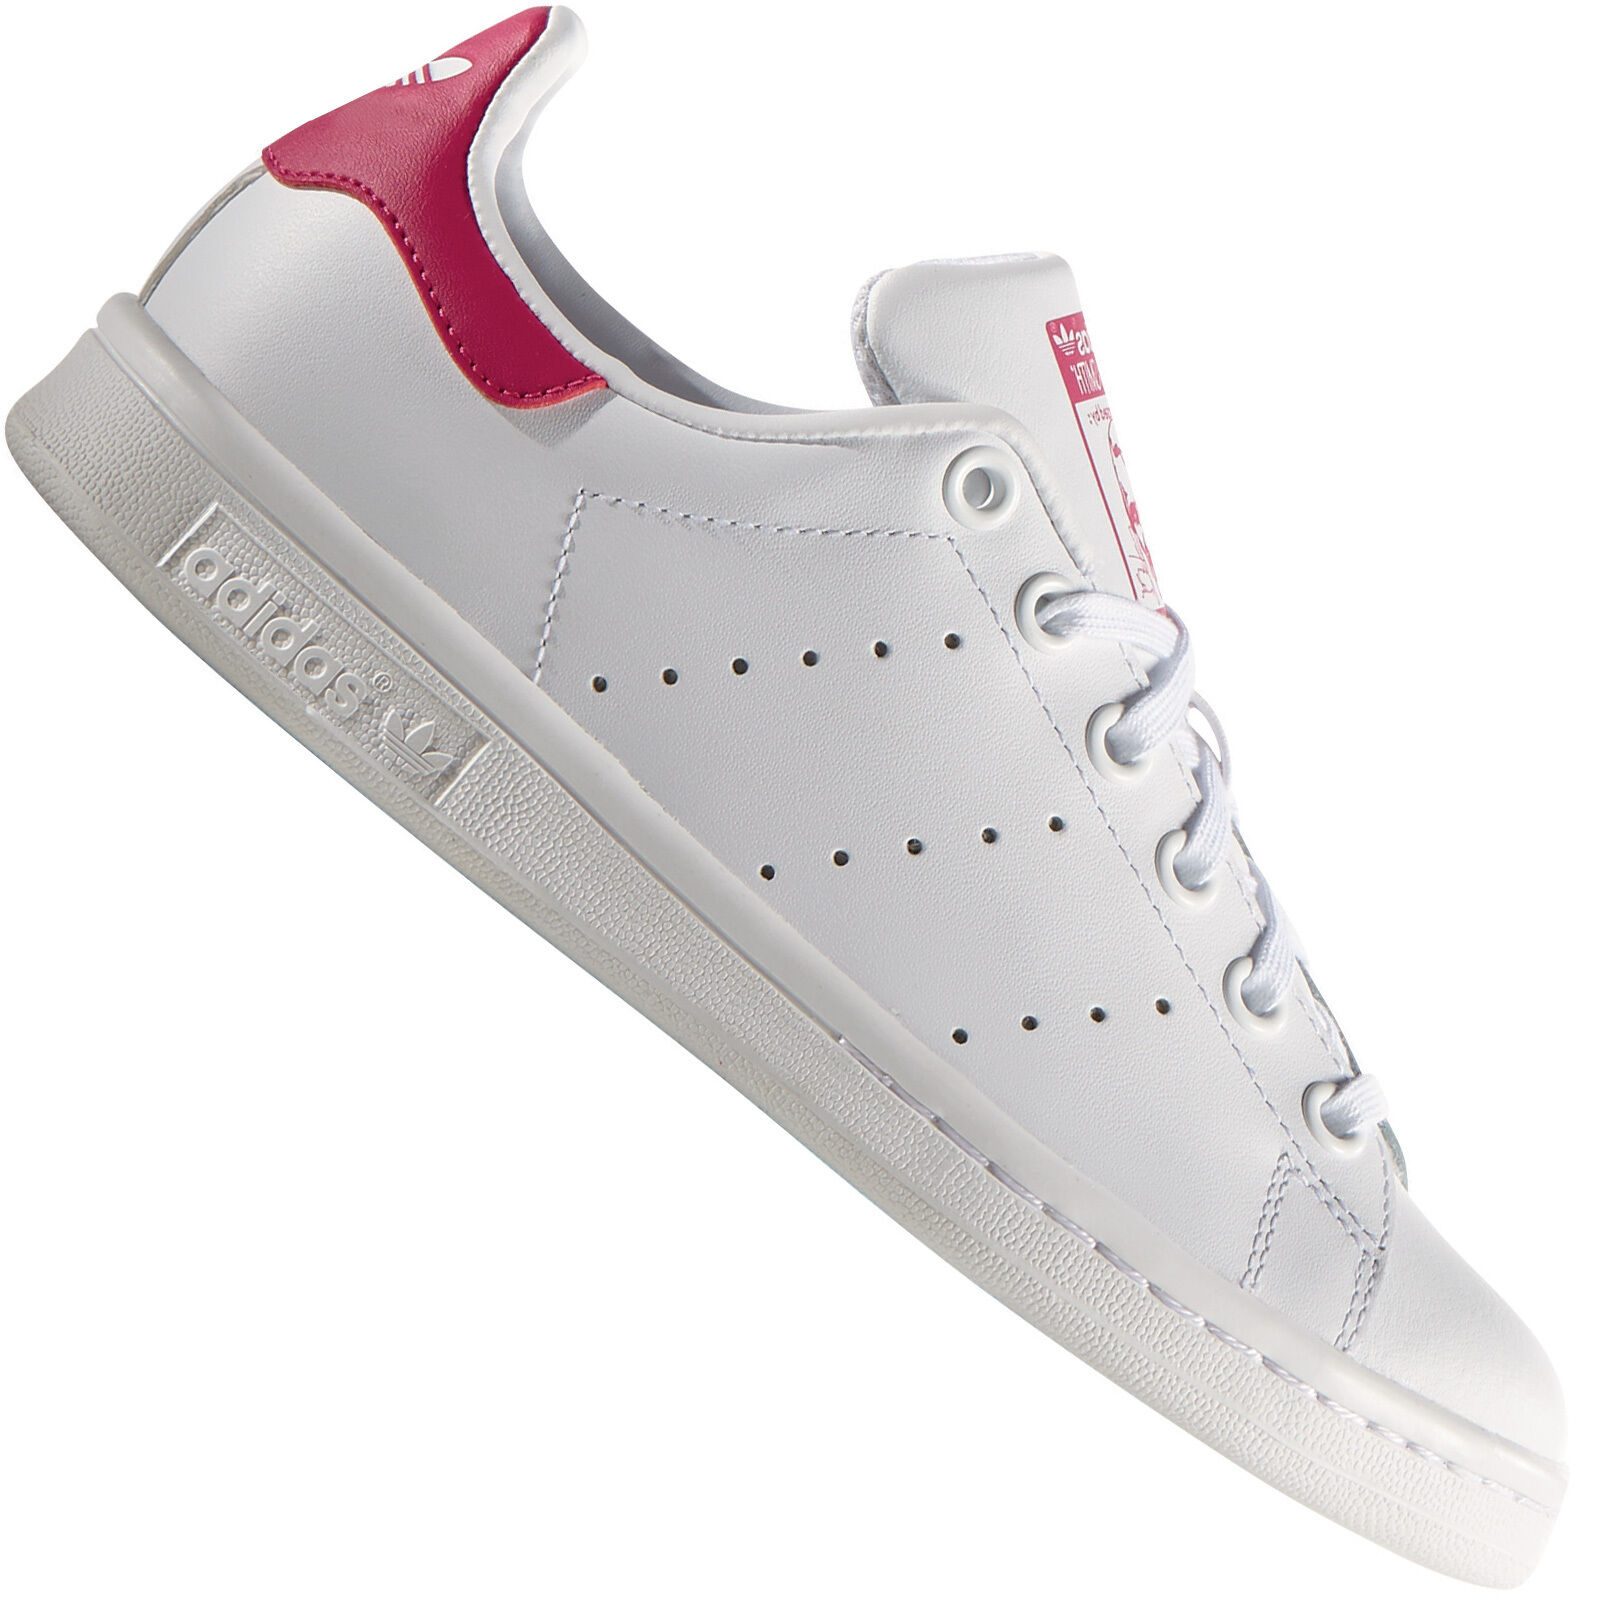 adidas Originals Stan Smith Y women's sneakers B32703 White/Pink Sneakers Shoes